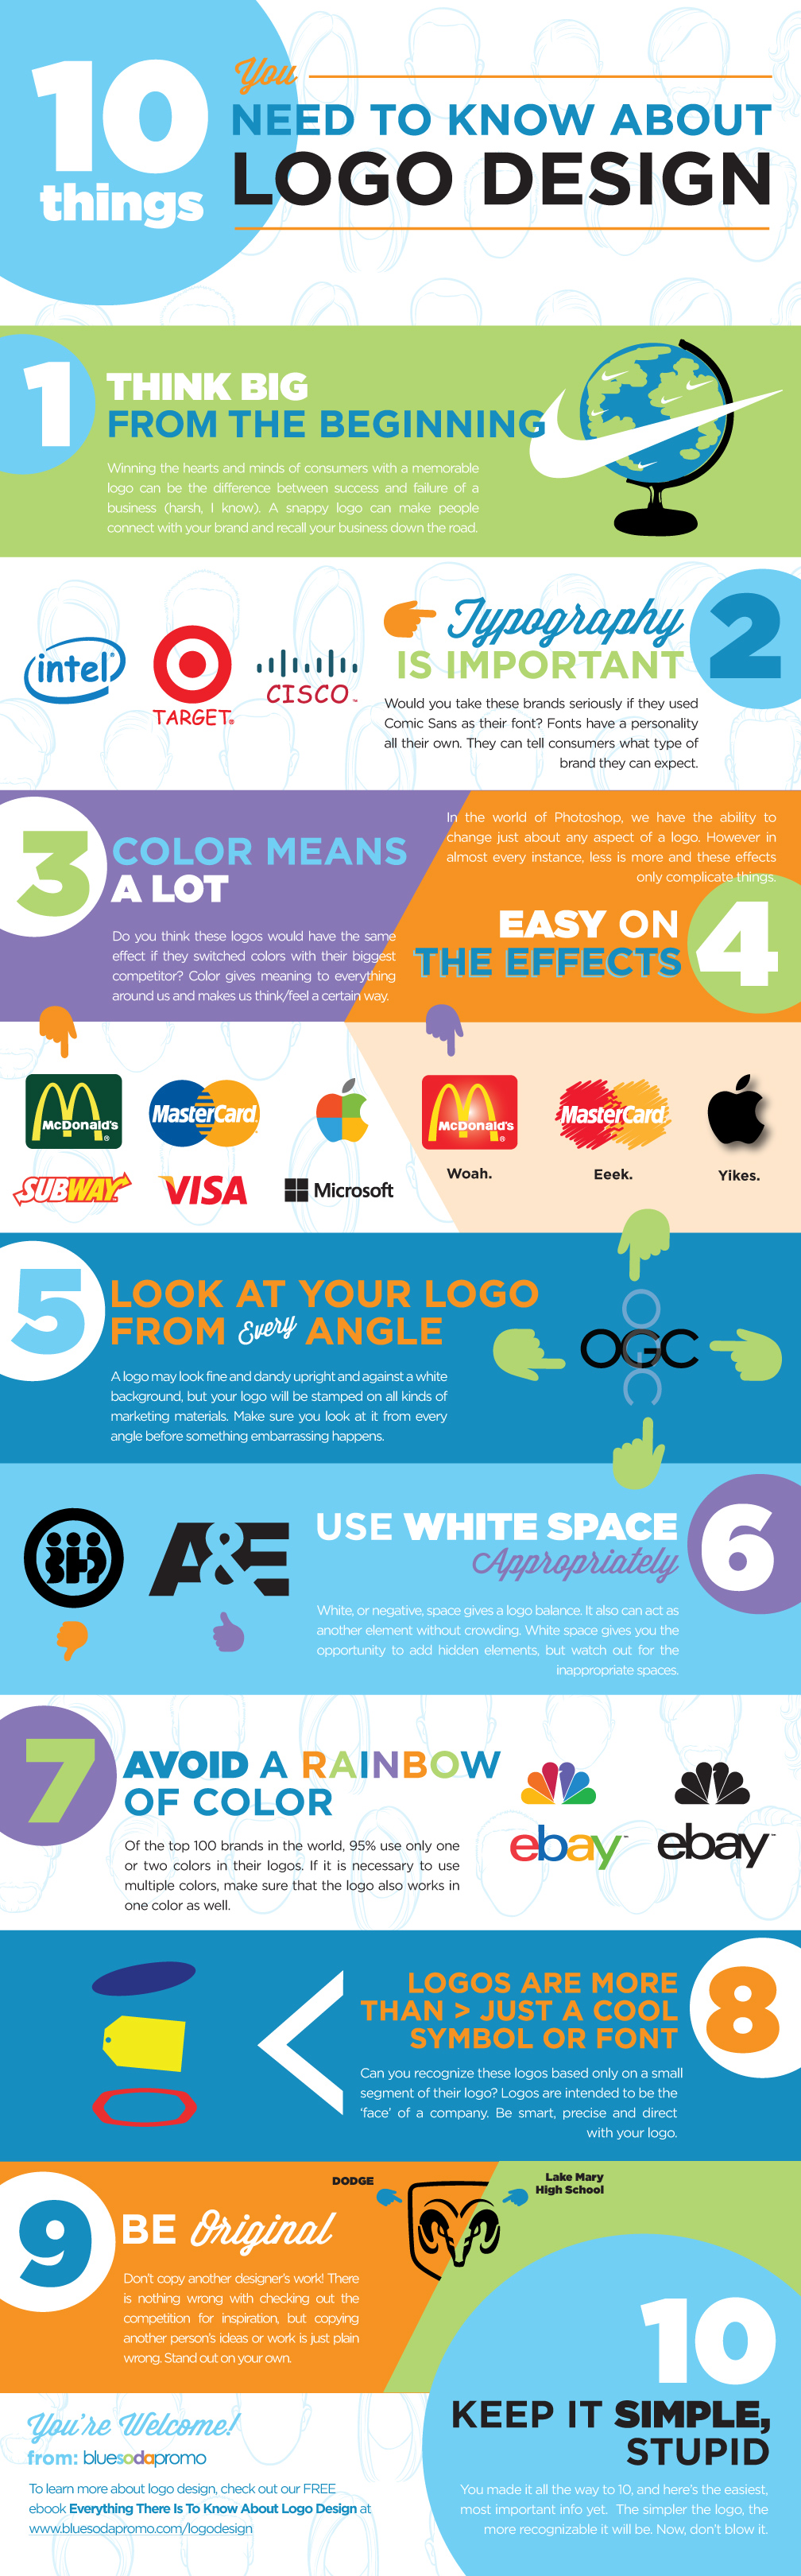 10 Things You Need to Know About Logo Design